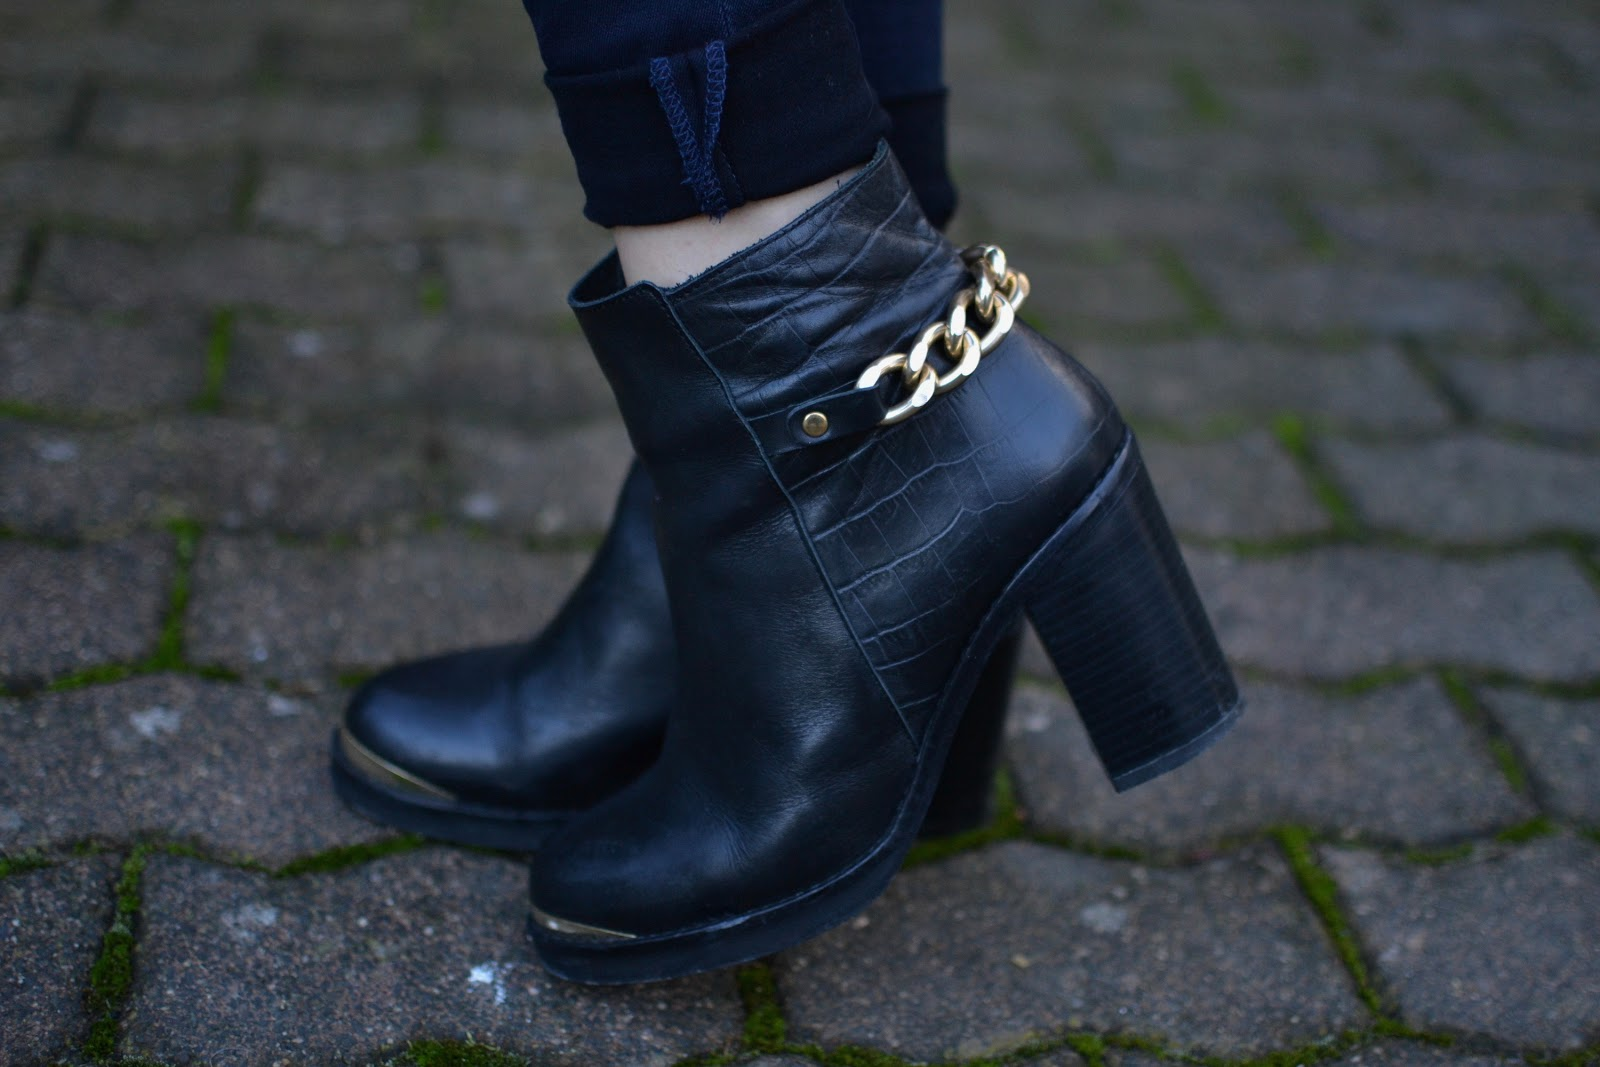 Topshop Merit leather chain heeled ankle boots